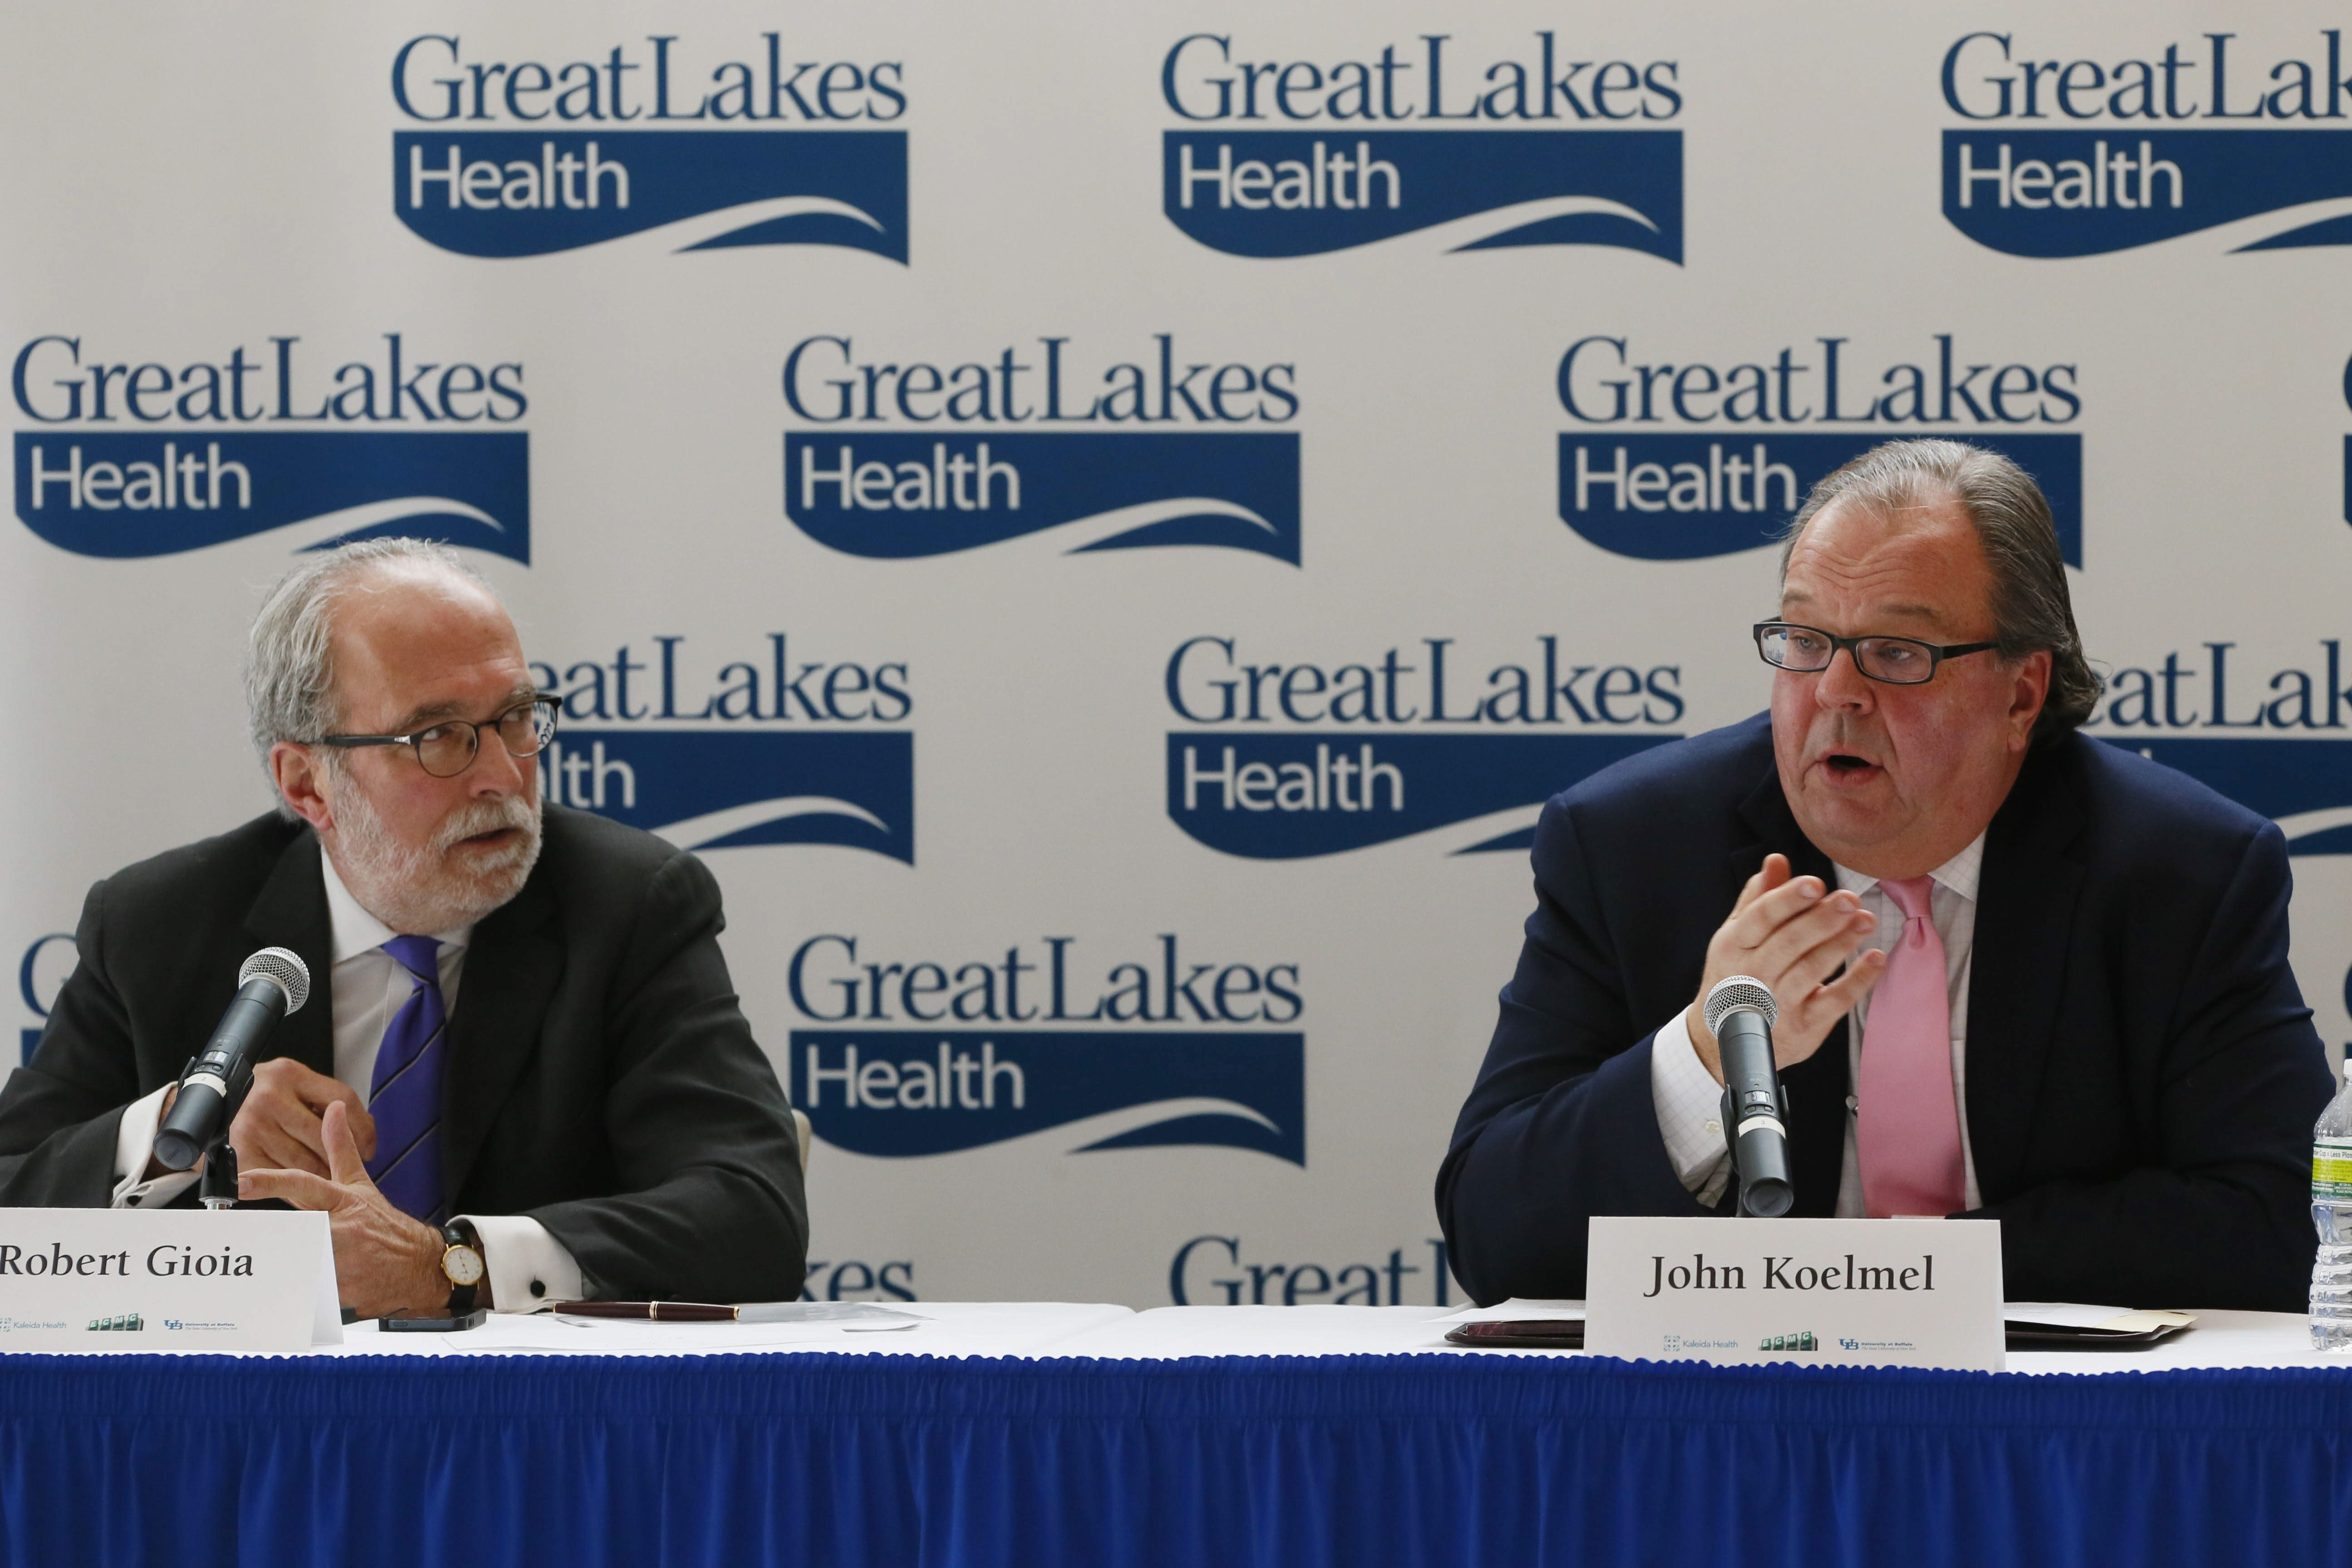 John Koelmel, chairman of the Kaleida Health board of directors, speaks during a press conference to announce James Kaskie has resigned as CEO and will be replaced on an interim basis by ECMC CEO Jody Lomeo today.